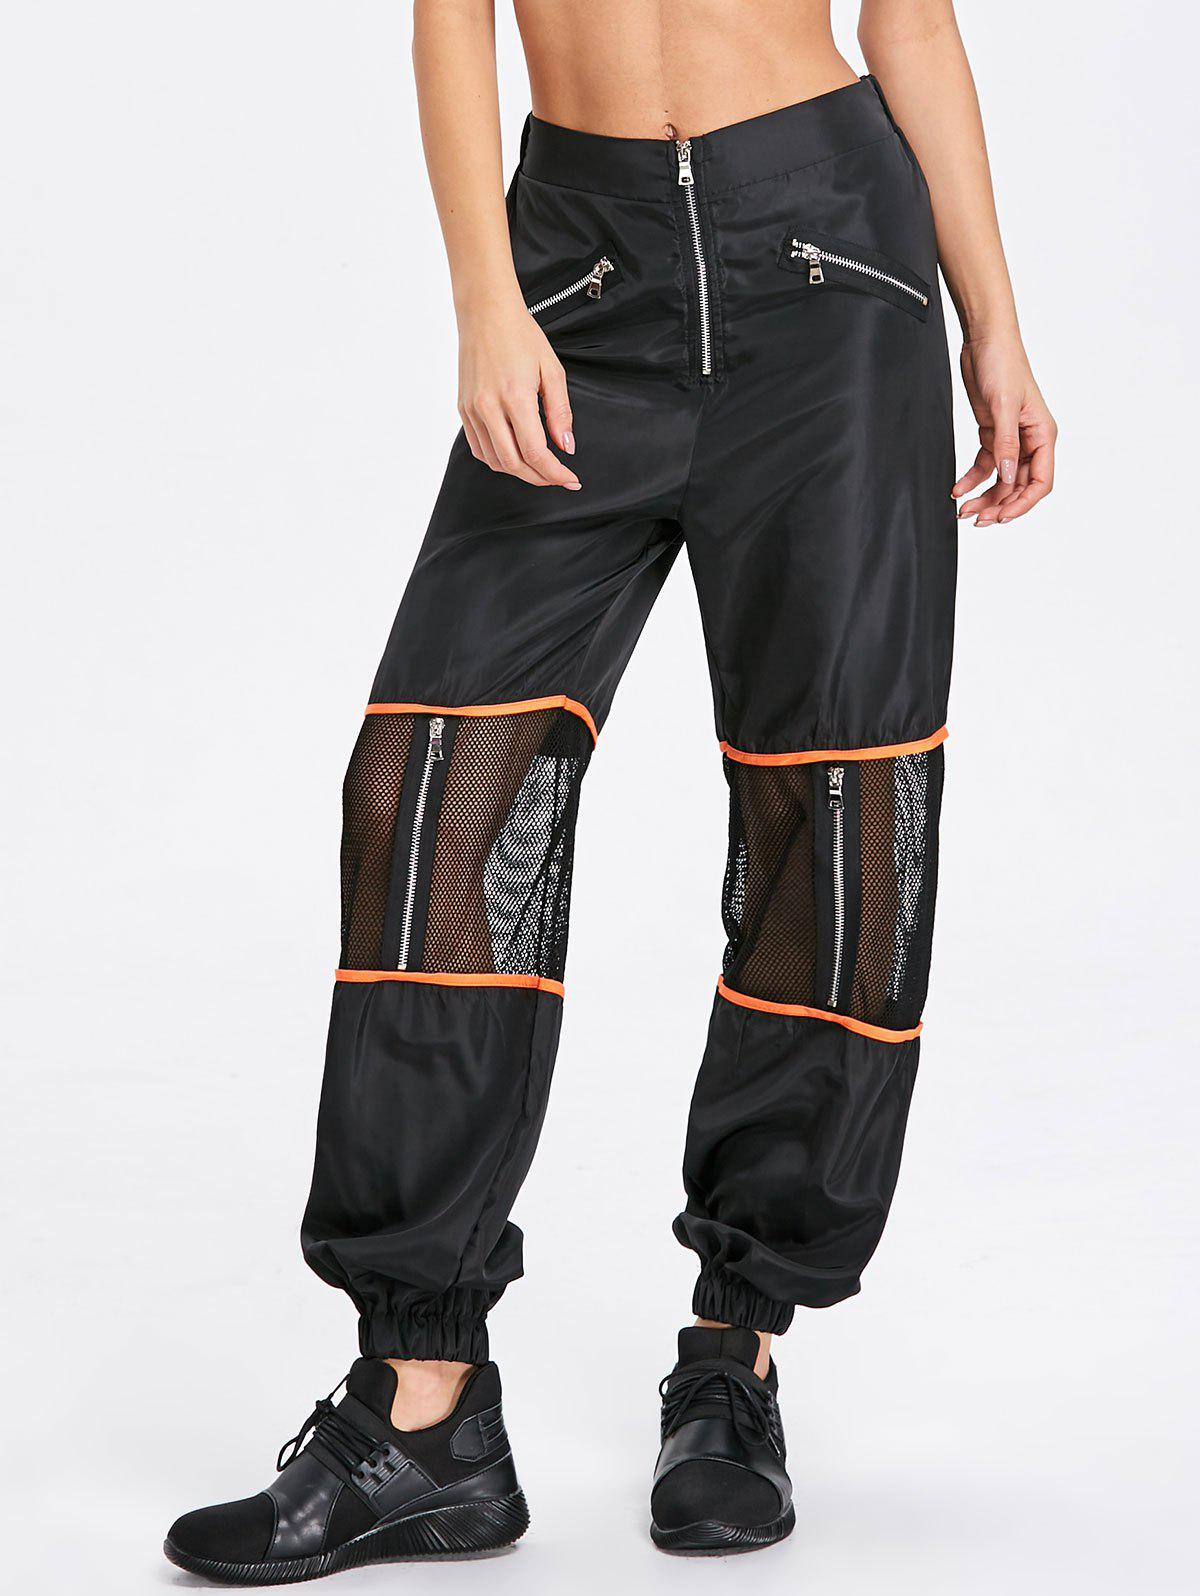 Zipper Fly Mesh Trim Pants - BLACK M